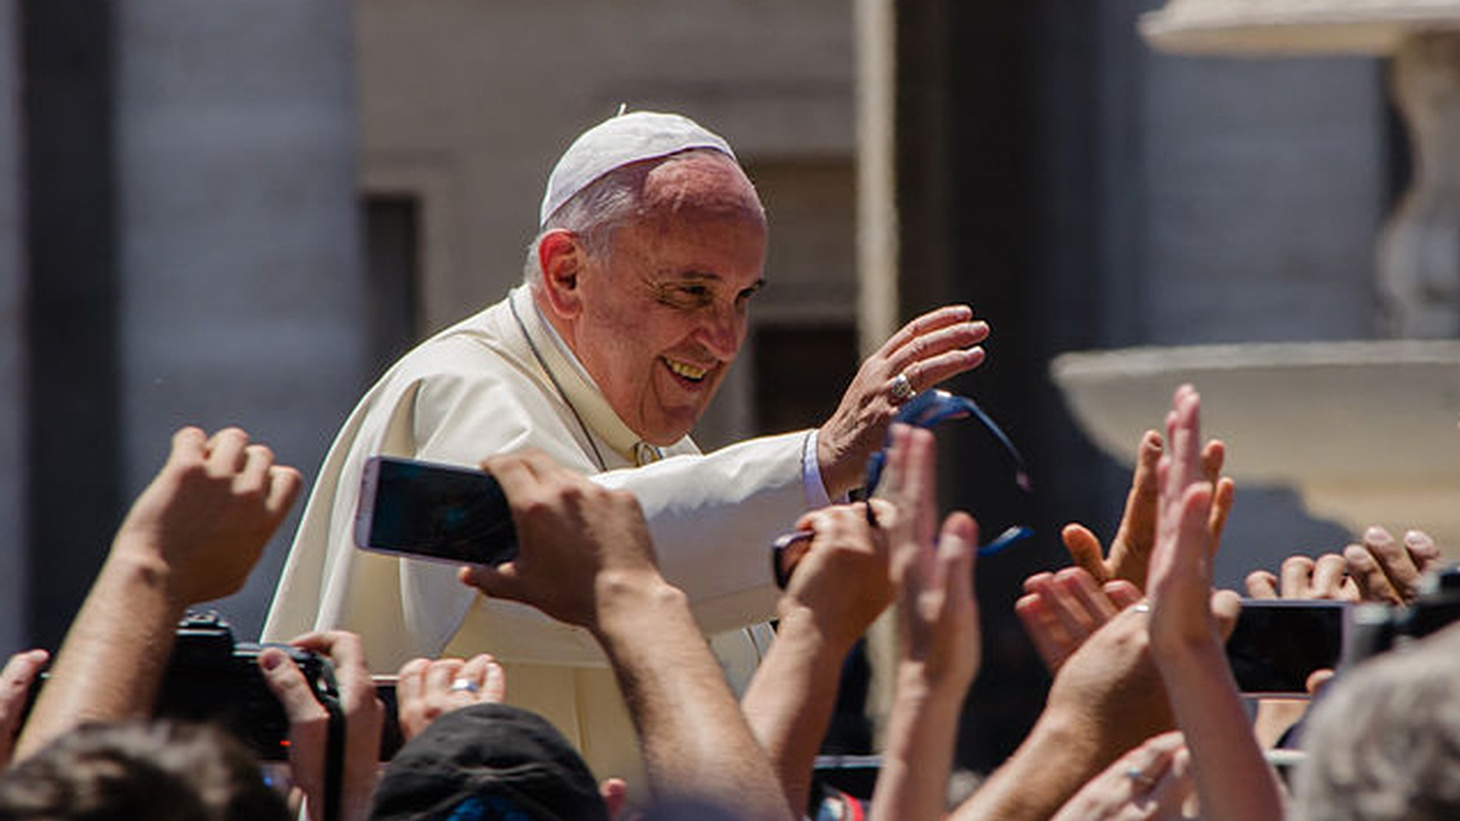 Pope Francis just wrapped up a six-day trip to Cuba and Mexico. The Zika virus wasn't on his agenda, but on his flight back to the Vatican last night, he was asked whether church teaching on abortion and contraception could be loosened to help stop the spread of the virus to babies.